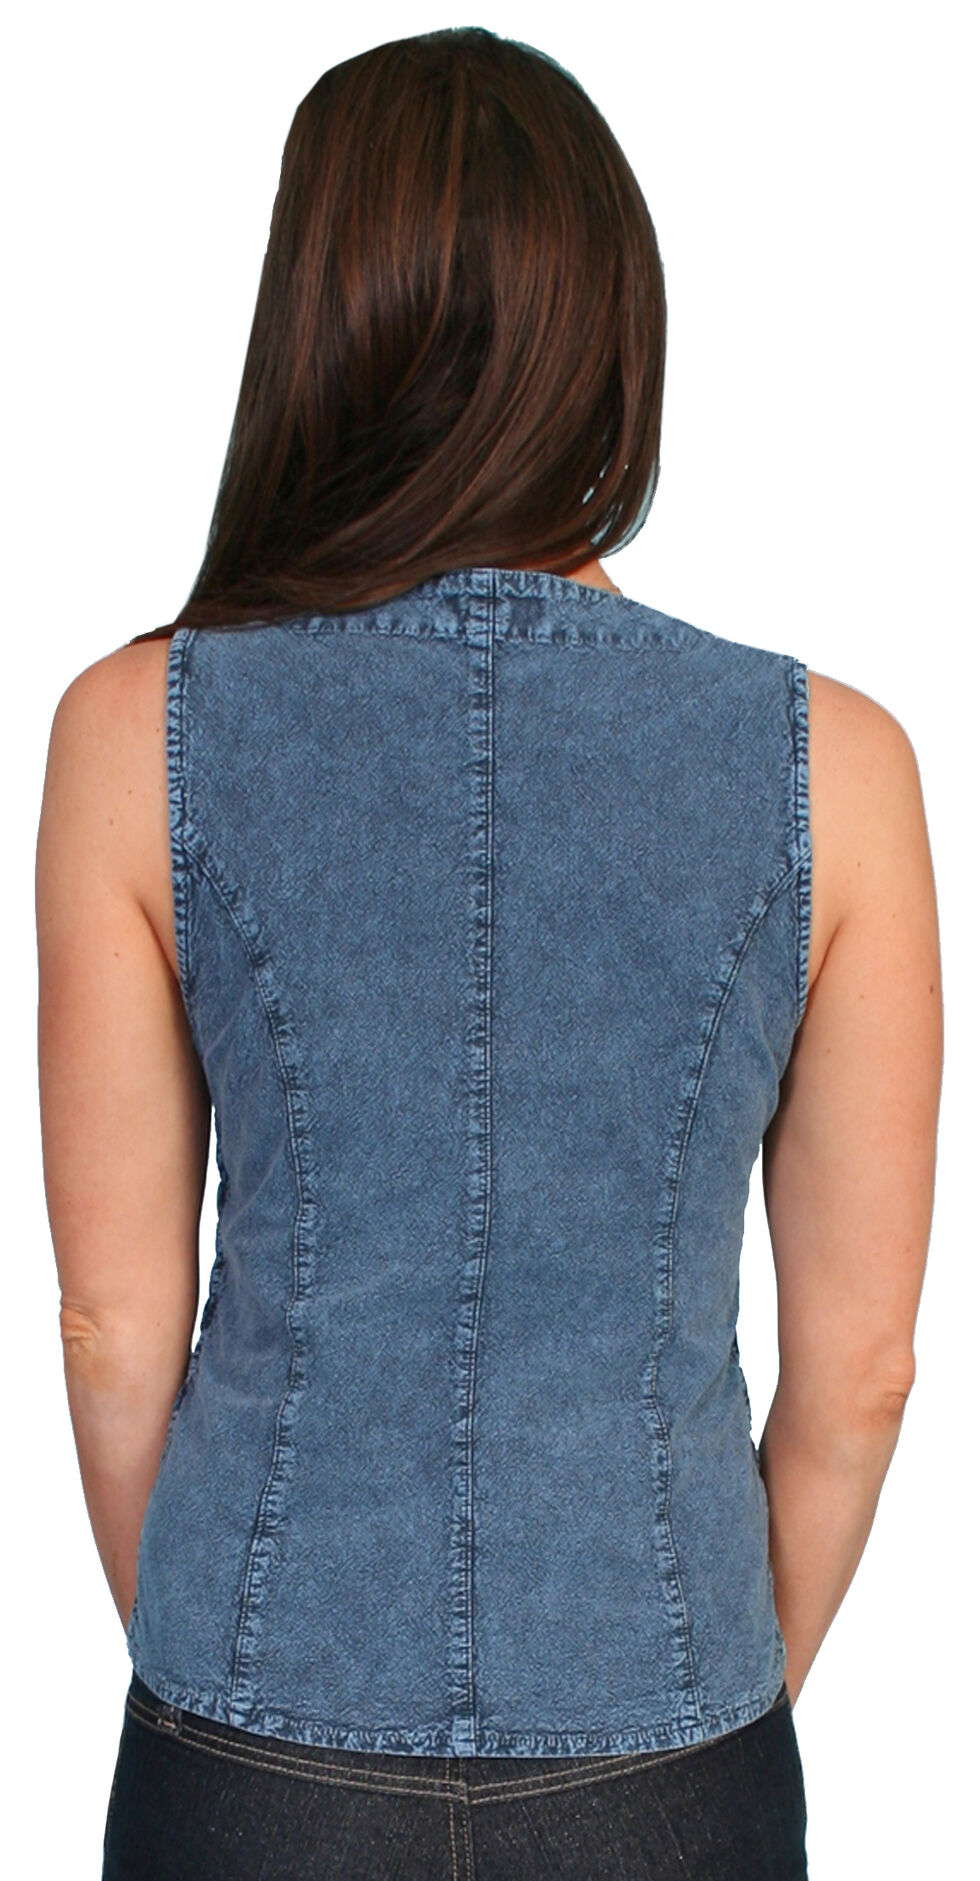 Scully Peruvian Cotton Laced Tank Top, Dark Blue, hi-res